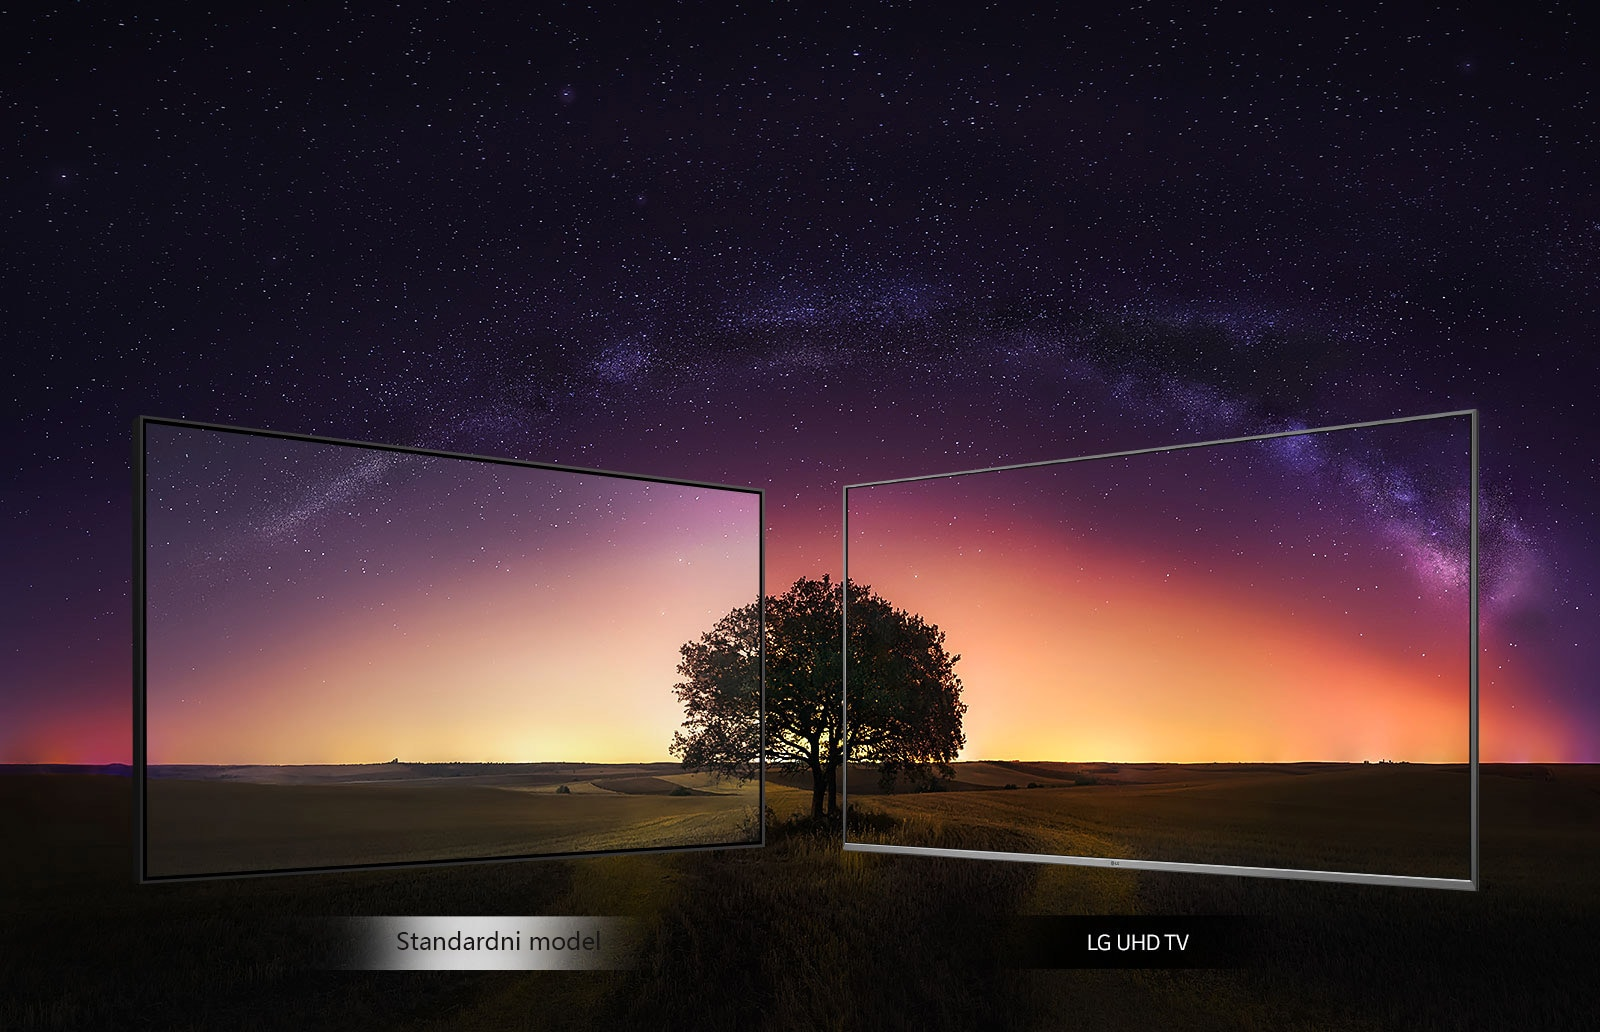 https://www.lg.com/rs/images/televizori/md07501700/feature/D01_TV-UHD-UM70-01-Wide-Viewing-Angle-Desktop-2.jpg